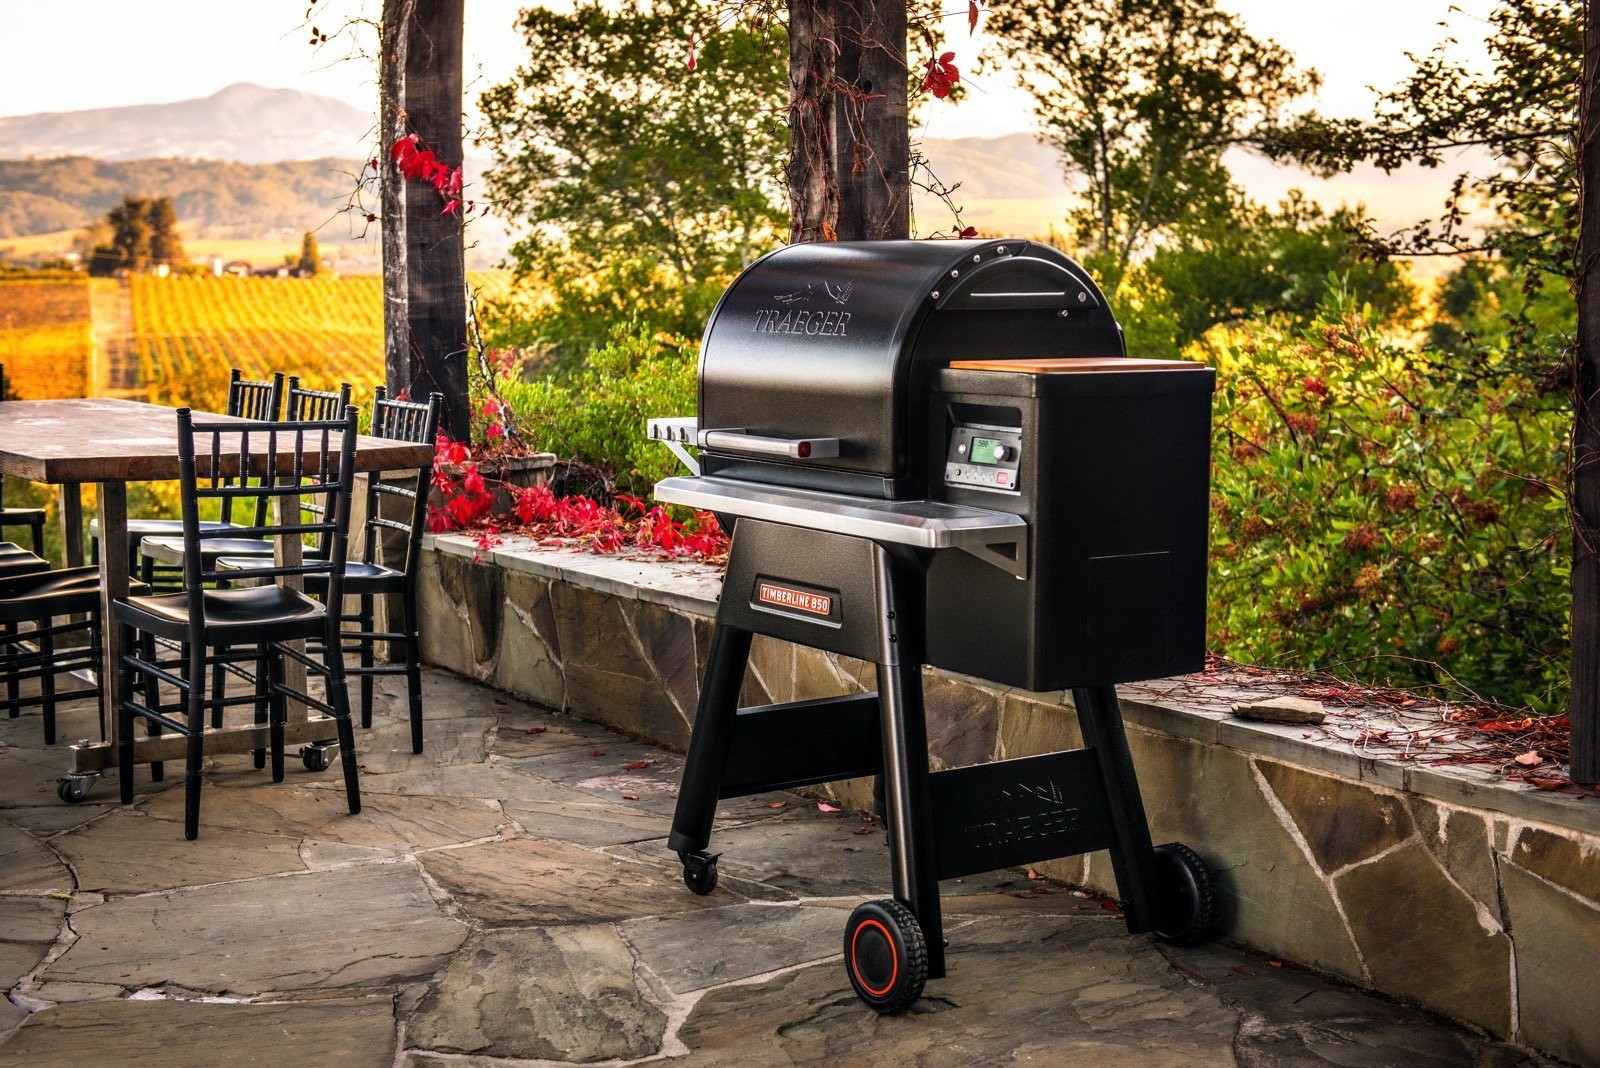 Traeger s 2019 grill lineup